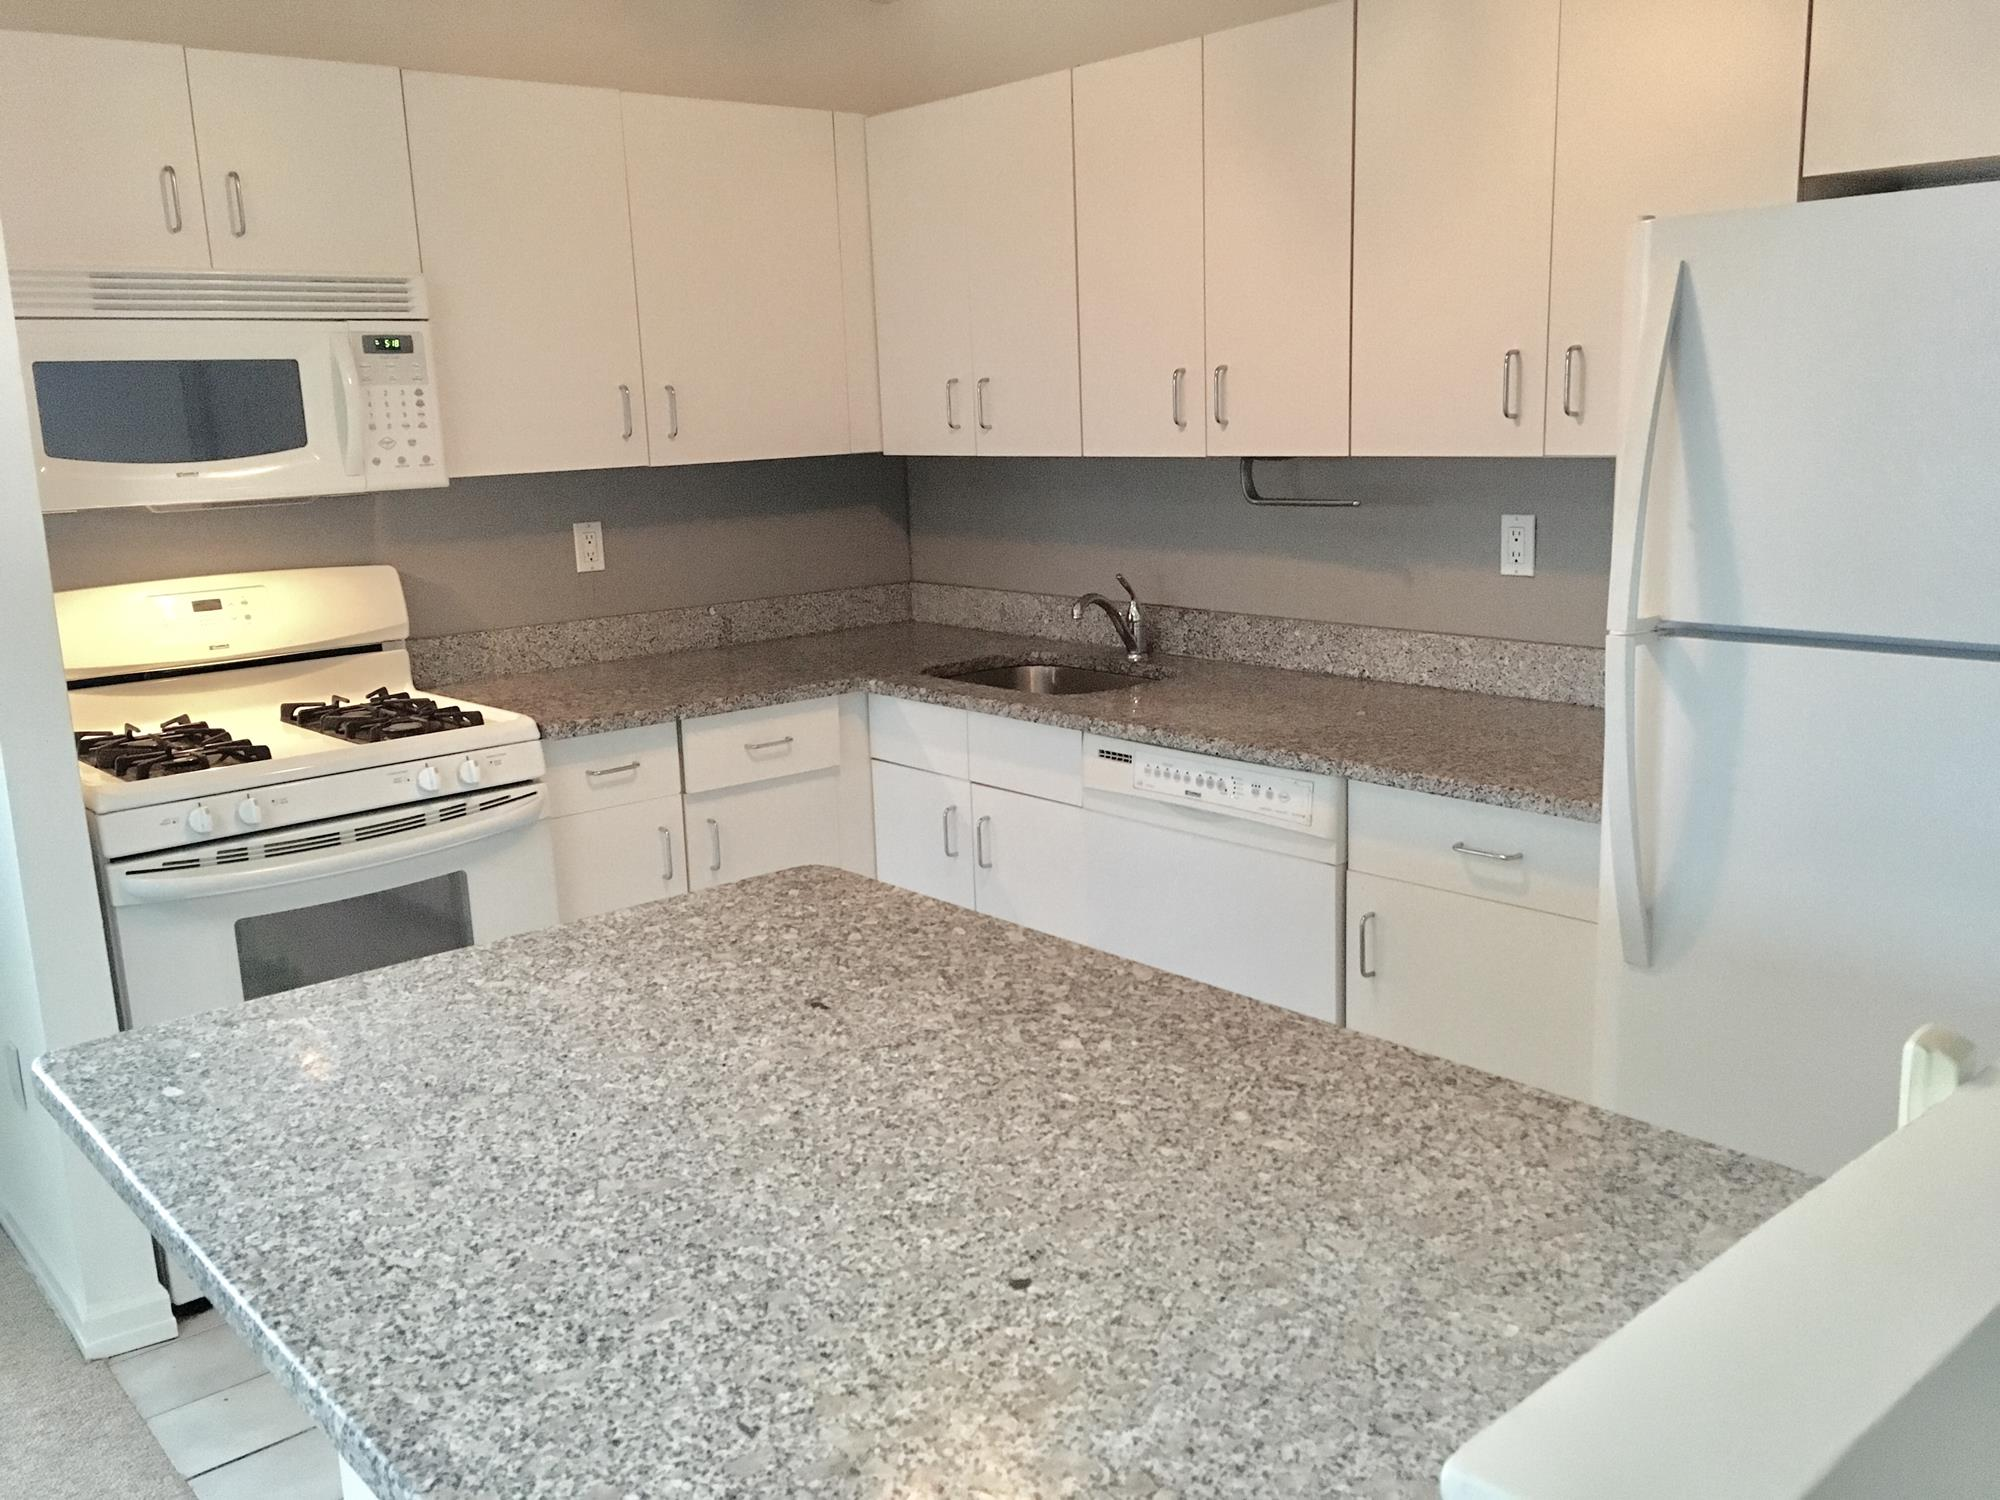 CONDO PENTHOUSE RENTAL – 3220 FAIRFIELD AVENUE: Bright & Modern 2-Bd., 2-Bath Apartment w/ Balcony; part-time doormen; updated bathrooms ; washer/dryer in unit; expansive skylight; 9th (top) floor.  Near transportation, schools, parks & Johnson Ave. shops.  Pets OK.